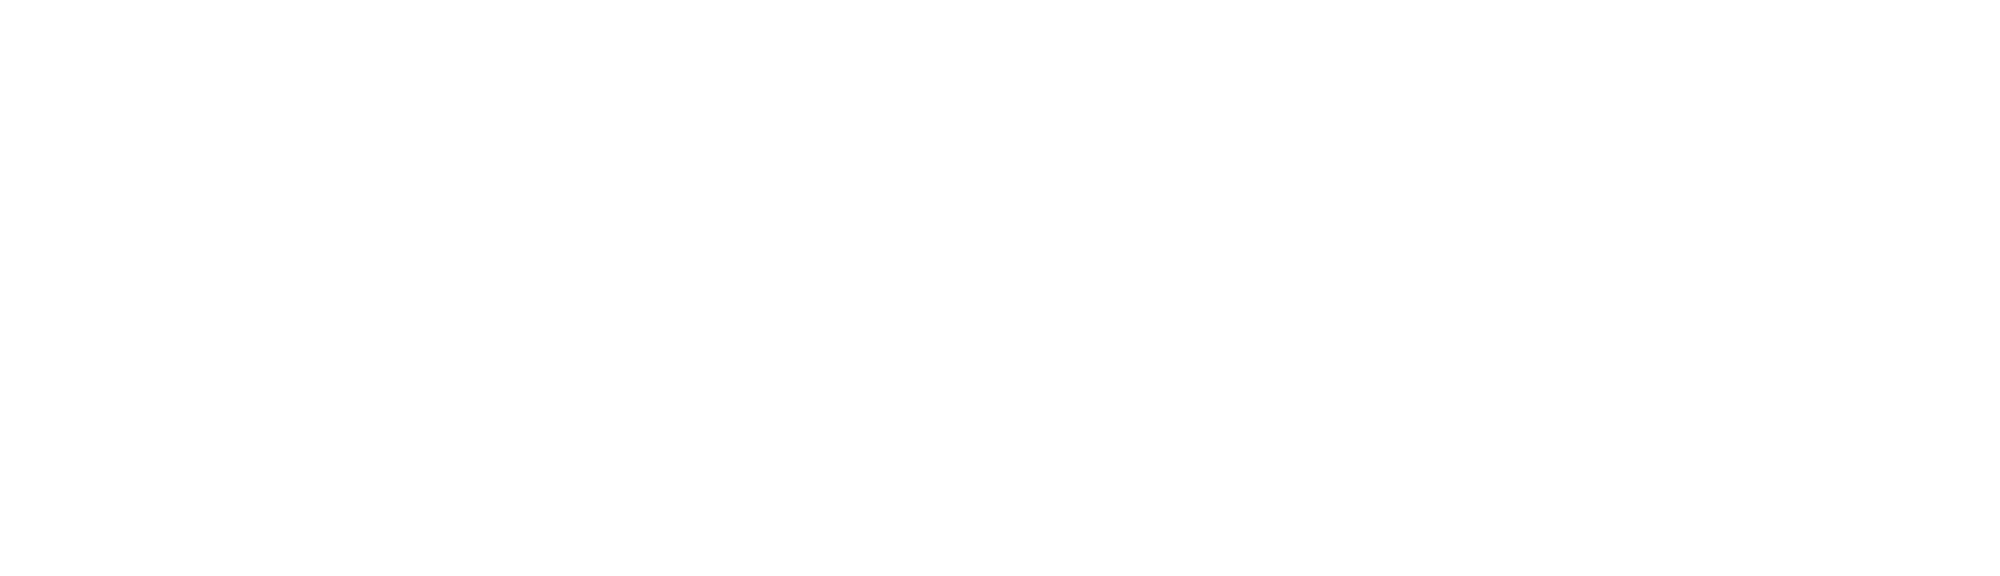 The Small Ship Collective